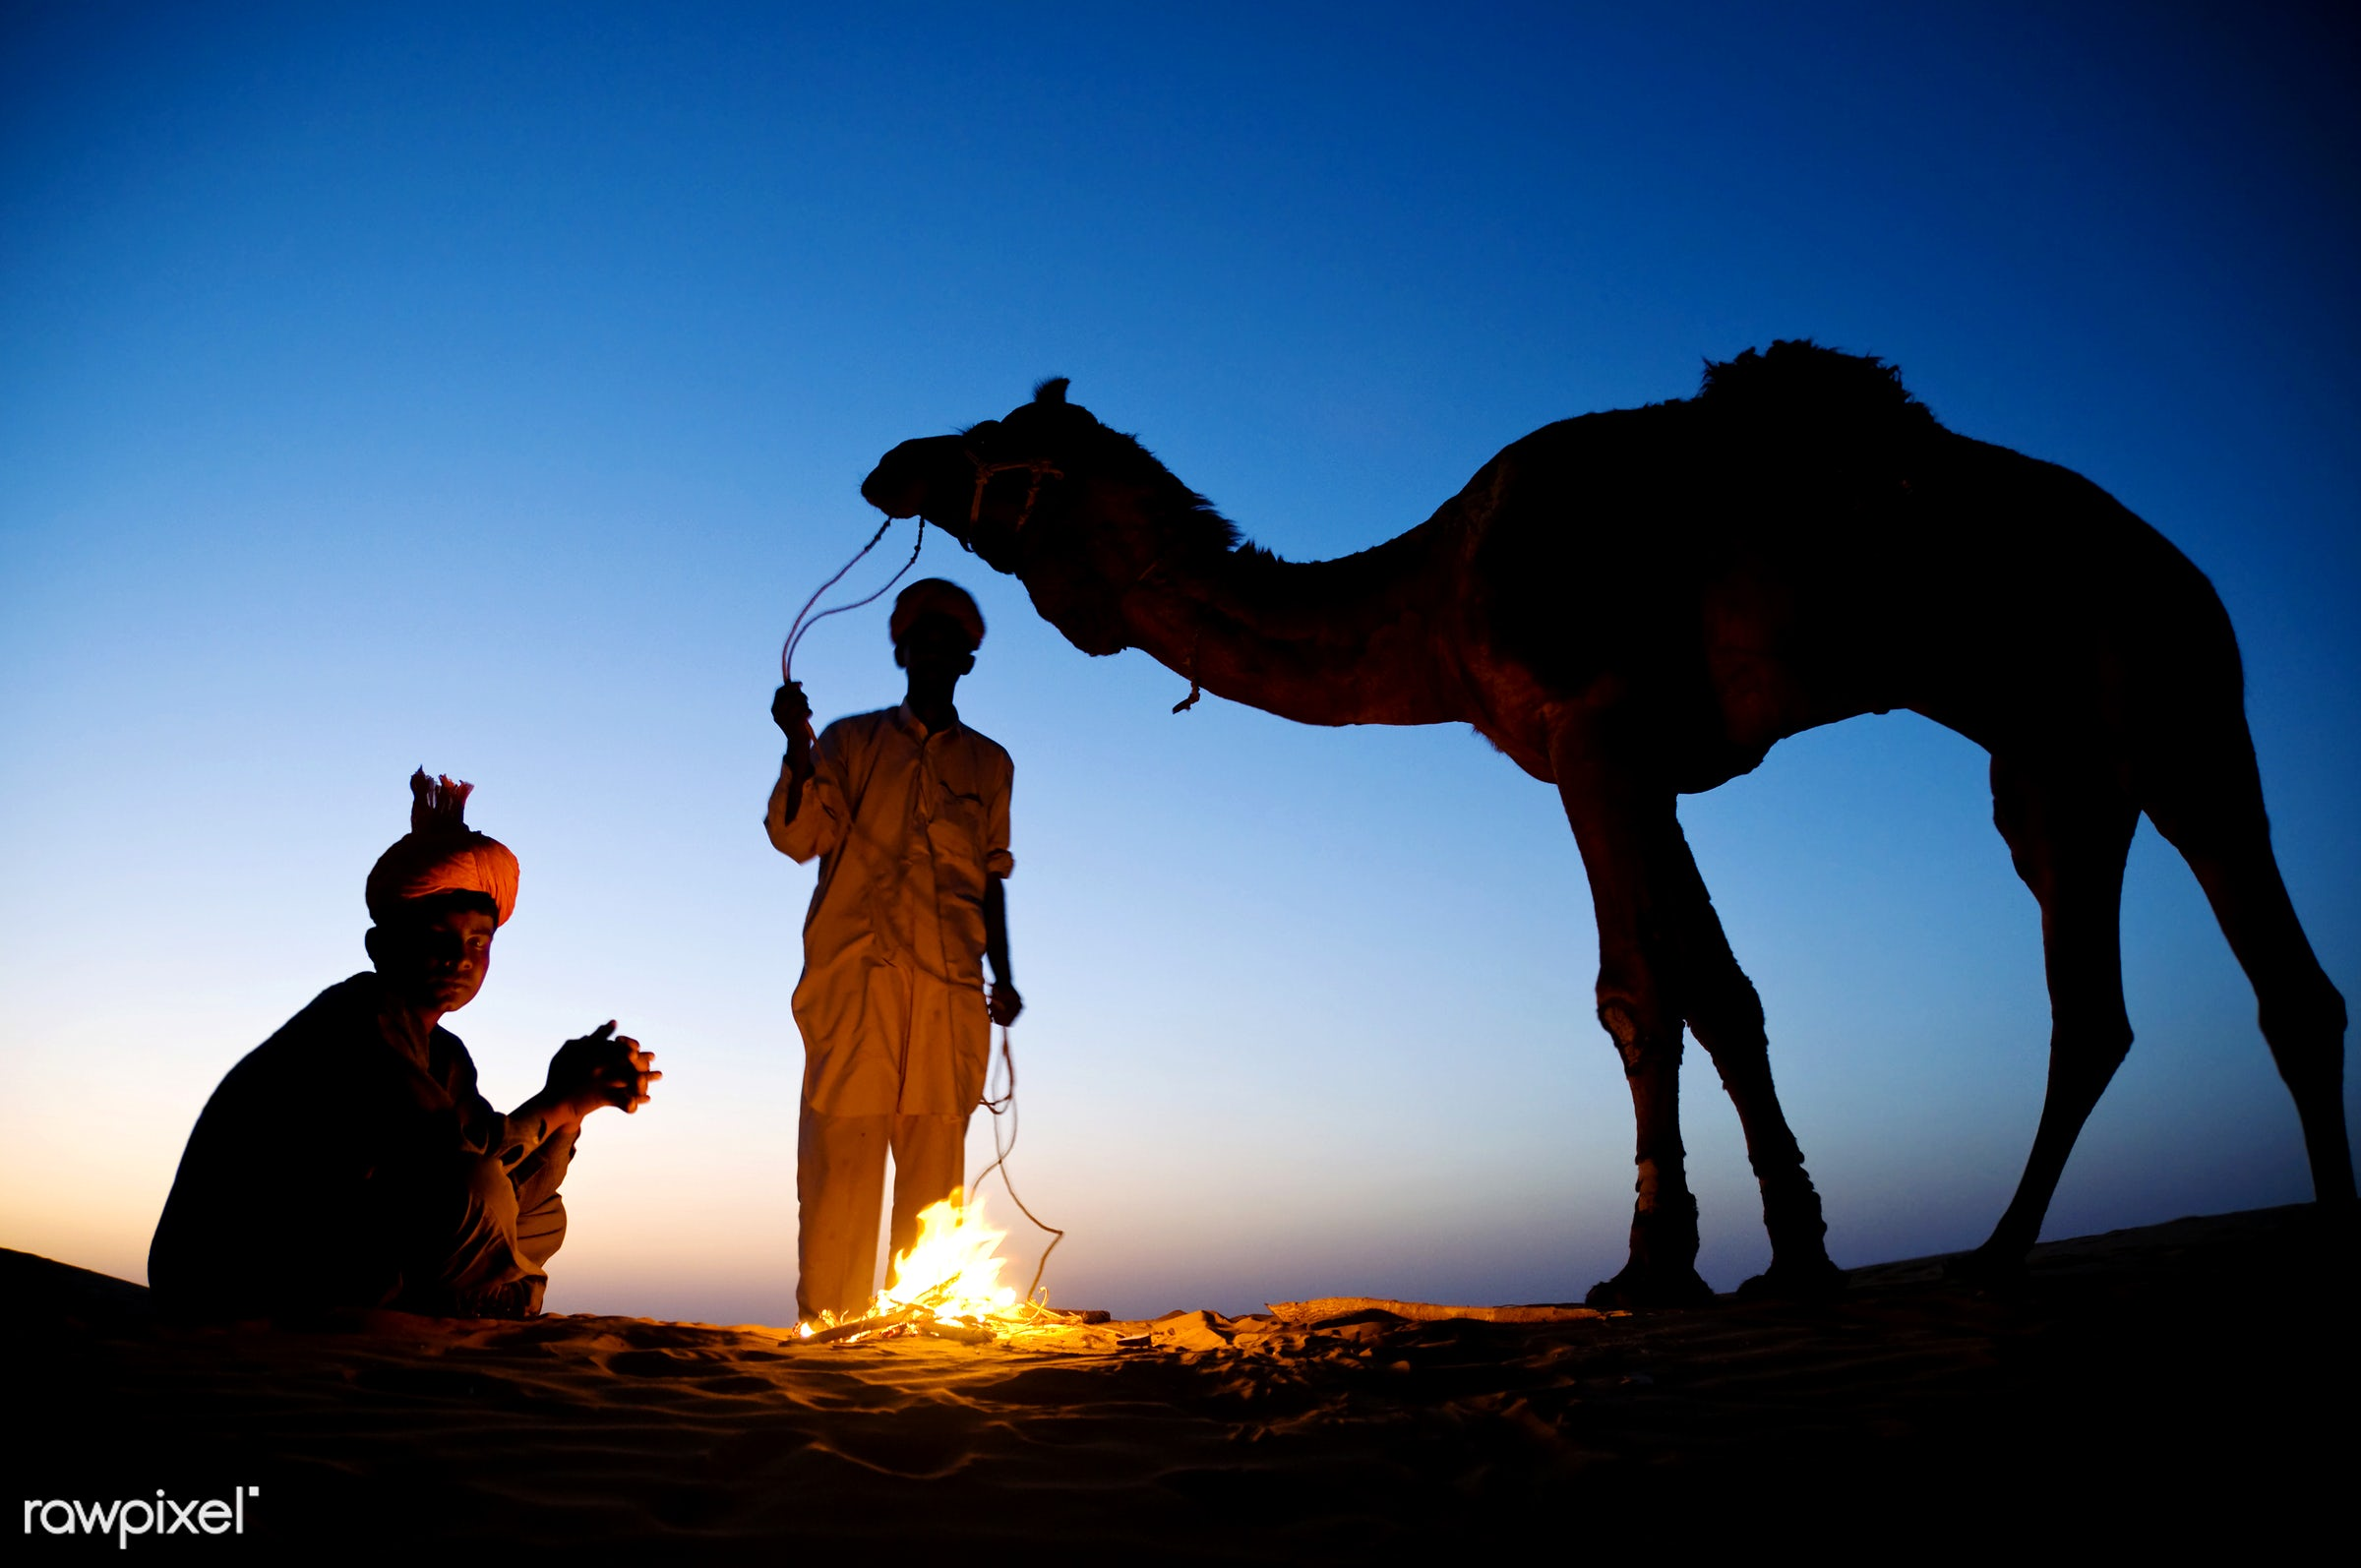 Indian men resting by the bonfire with their camel - animal themes, asia, bon fire, break, camel, culture, desert, dusk,...